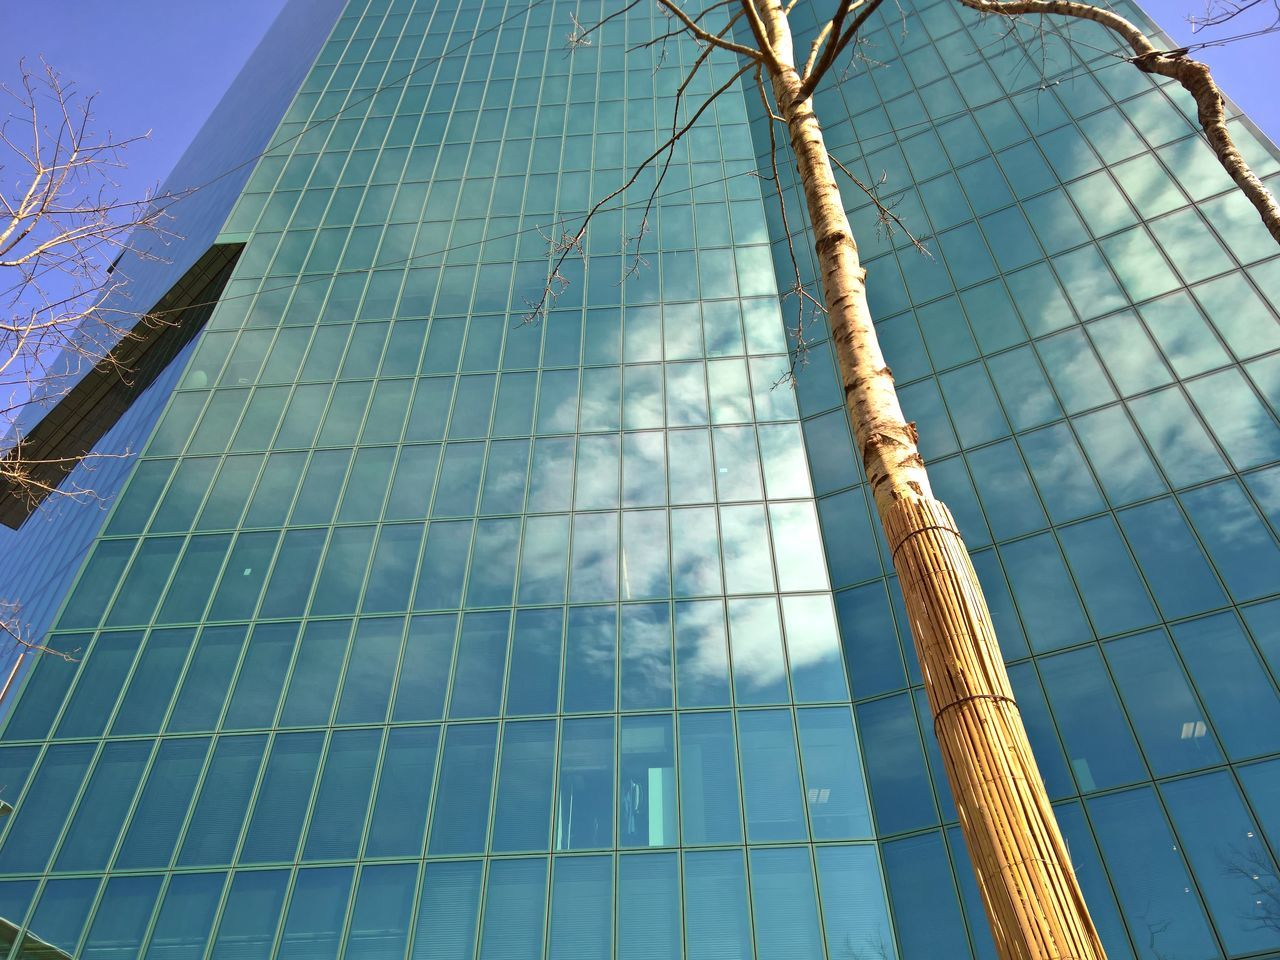 low angle view, no people, day, blue, outdoors, sunlight, growth, sky, architecture, nature, tree, close-up